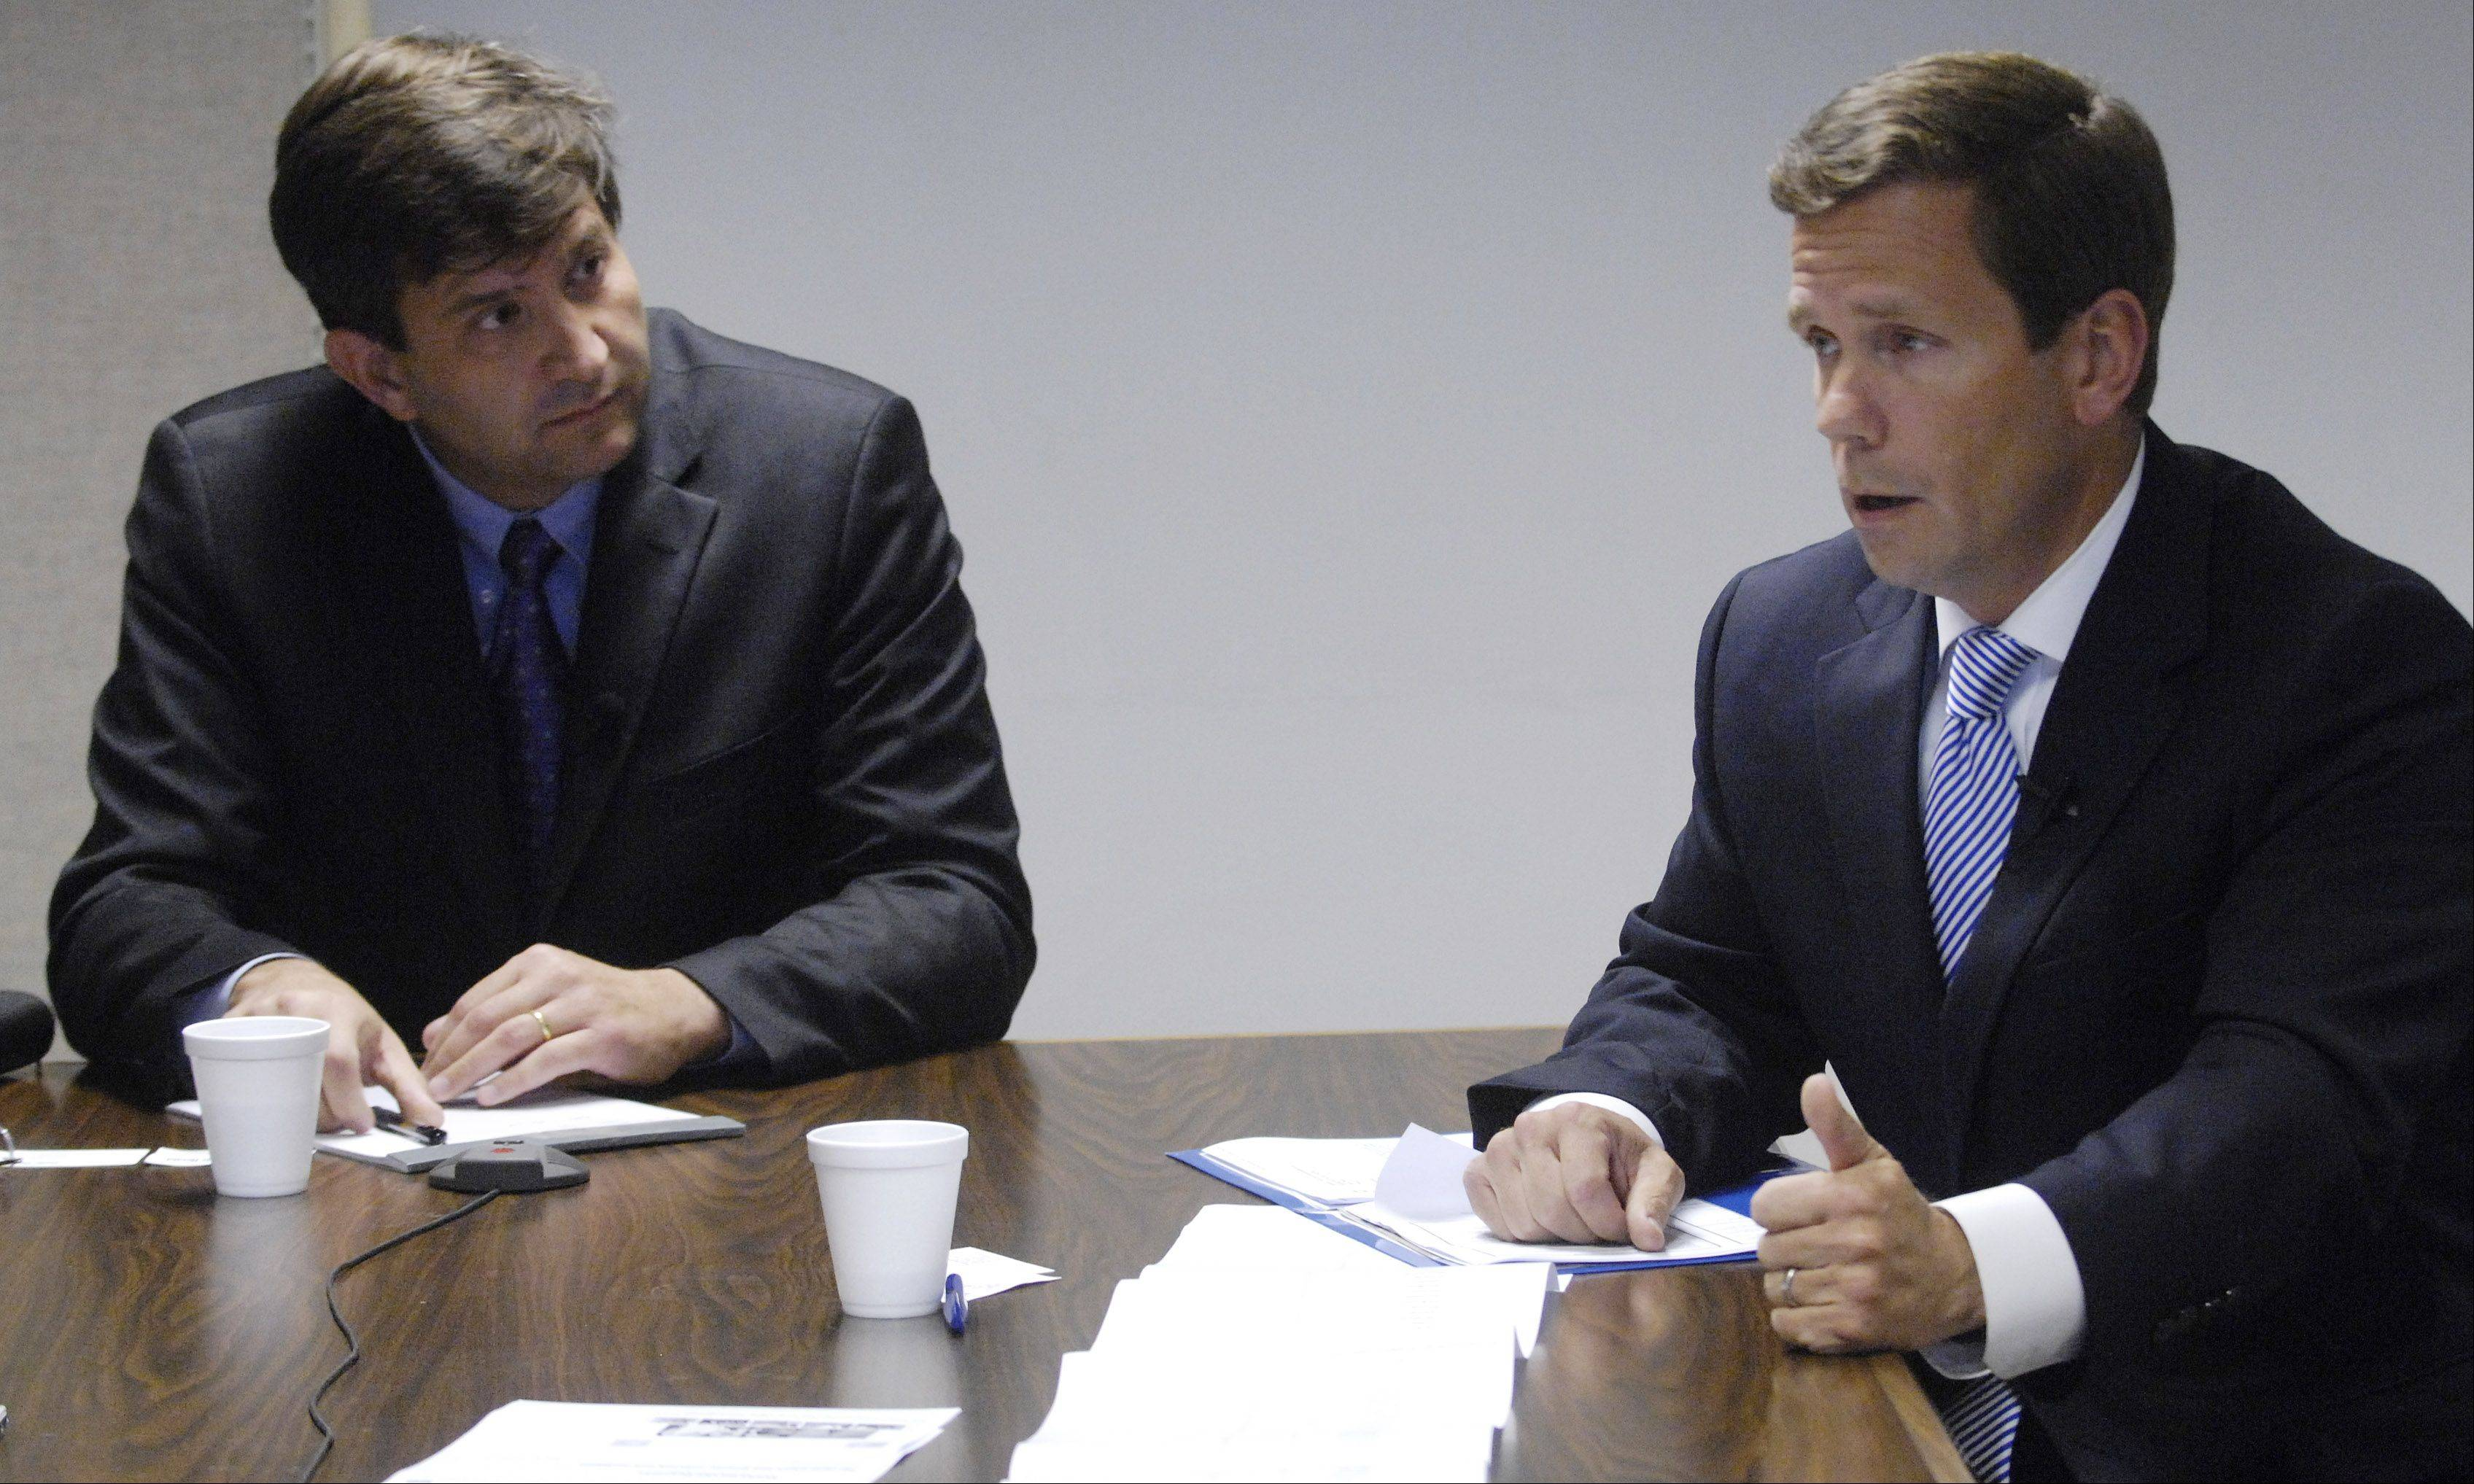 Democratic challenger Brad Schneider, left, and Republican U.S. Rep. Robert Dold, right, recently met with reporters and editors at the Daily Herald to talk about the issues in the 10th District race.